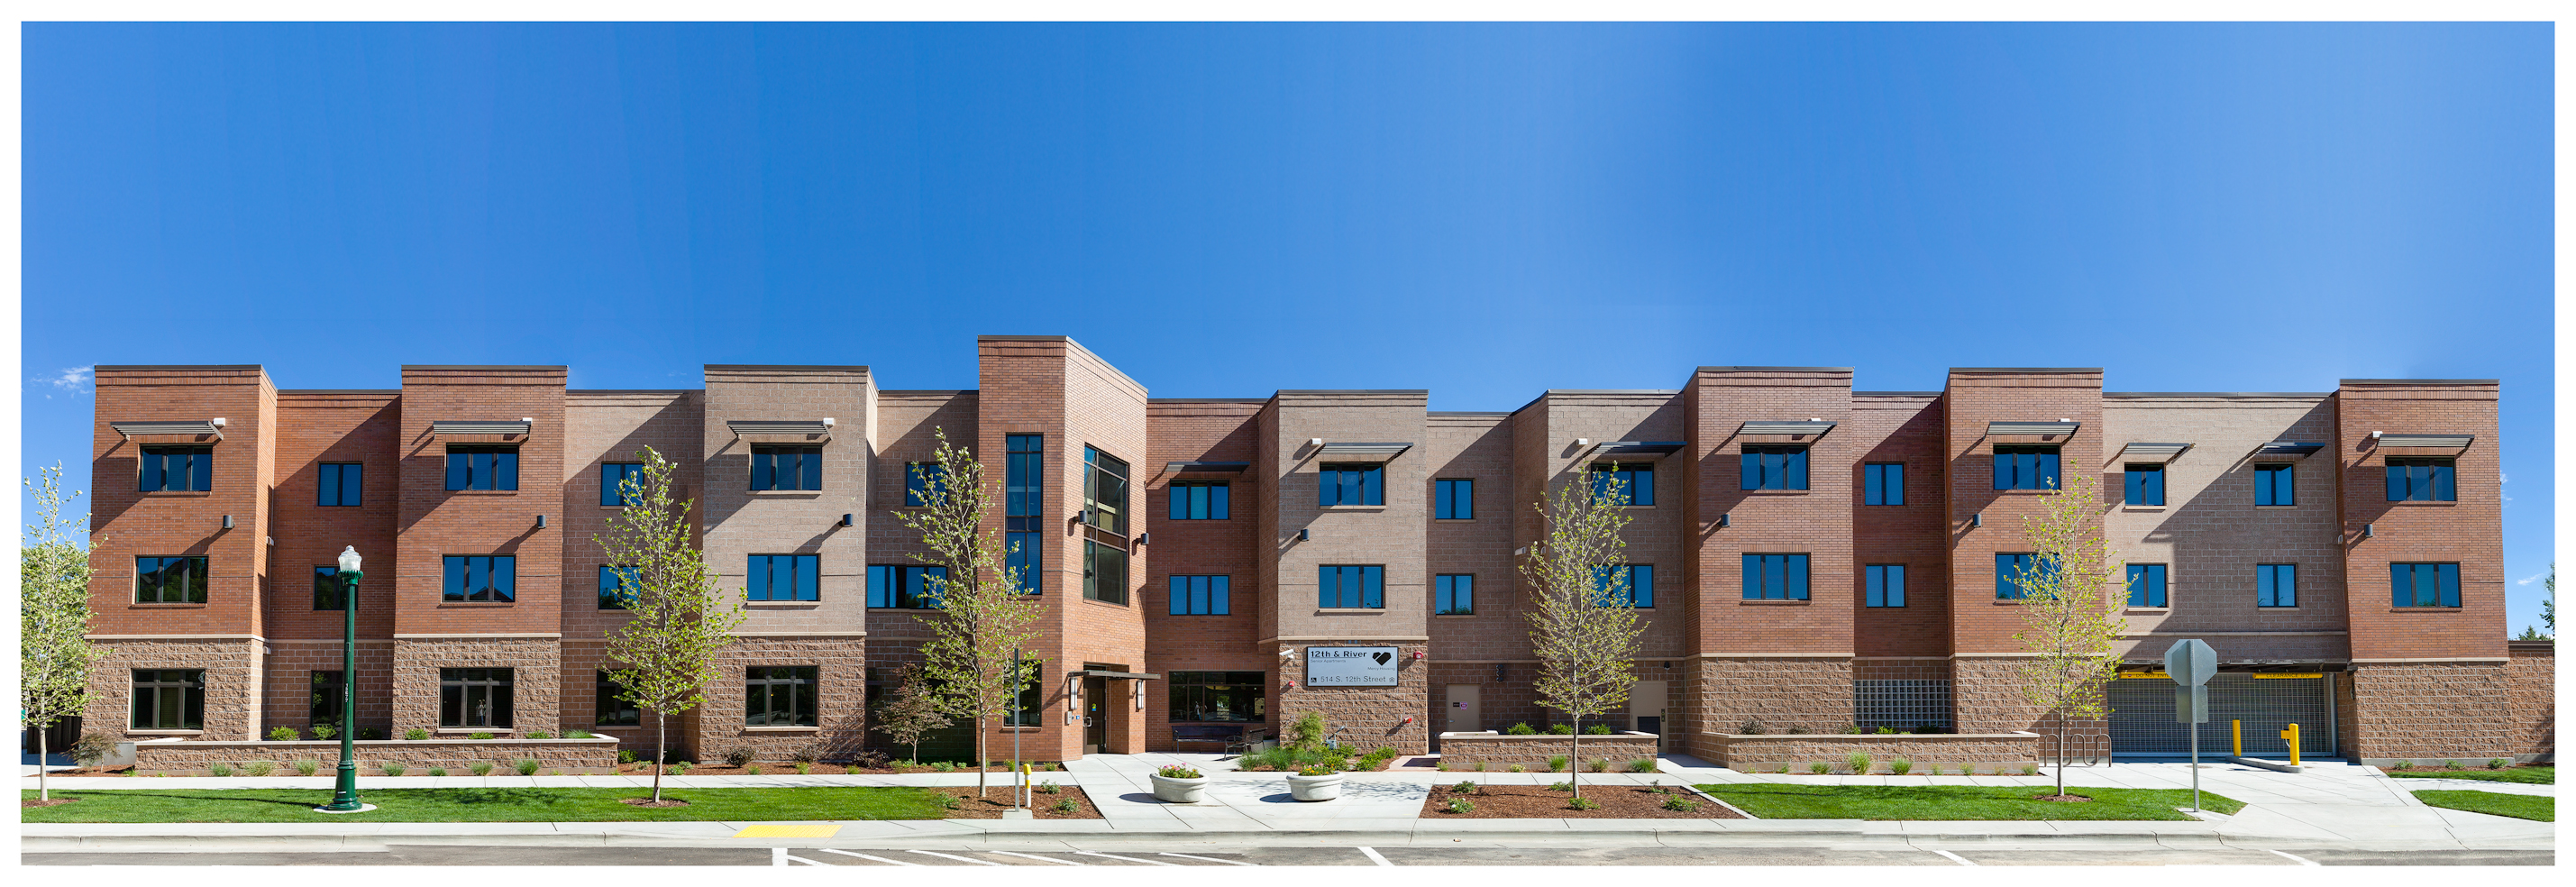 Mercy Housing Opens Senior Apartments At 12th And River Streets In Boise Me